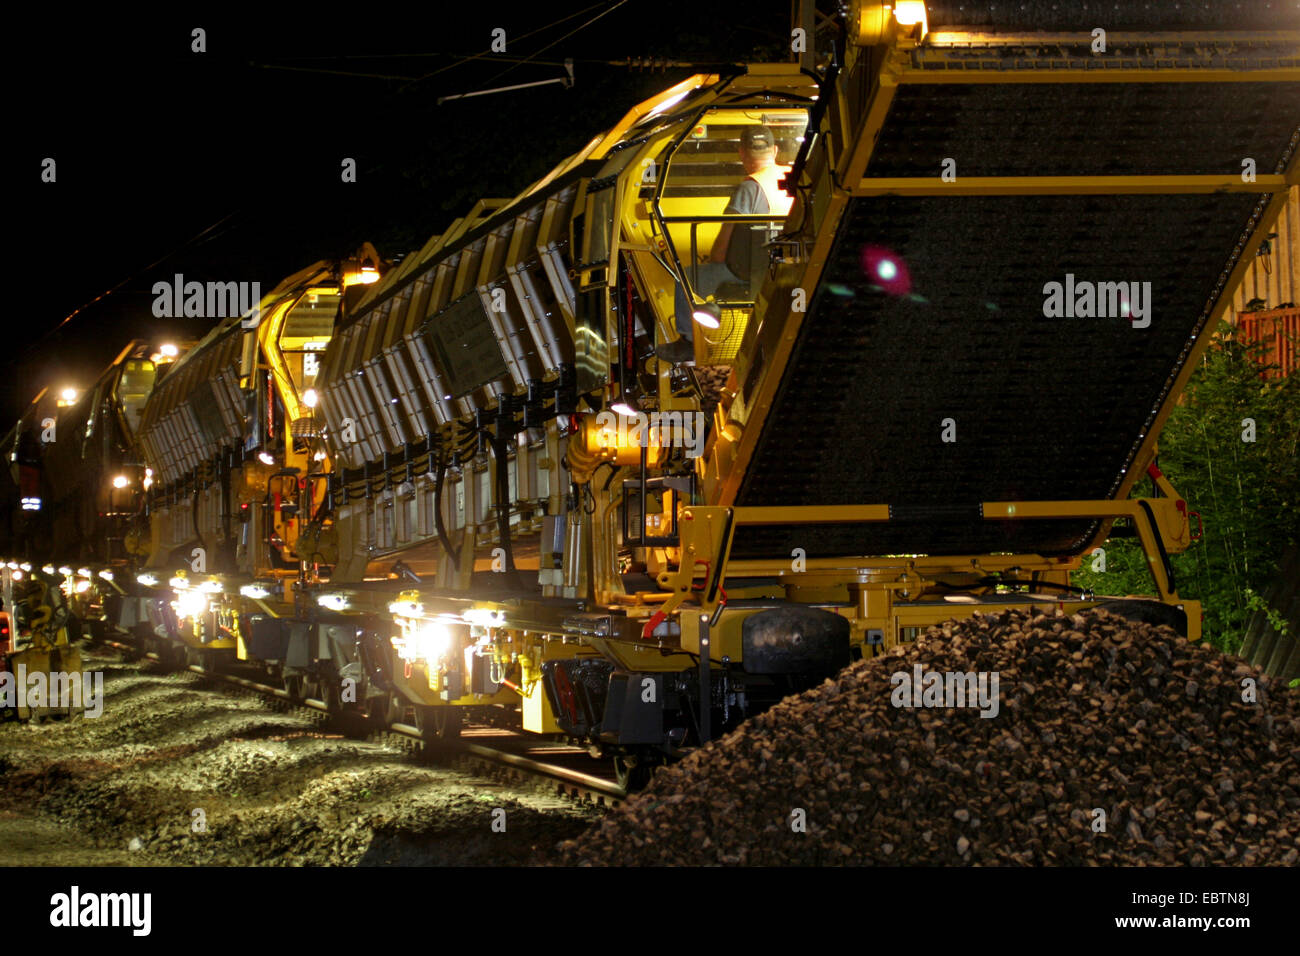 railway construction with hopper wagon at night, Germany, North Rhine-Westphalia - Stock Image